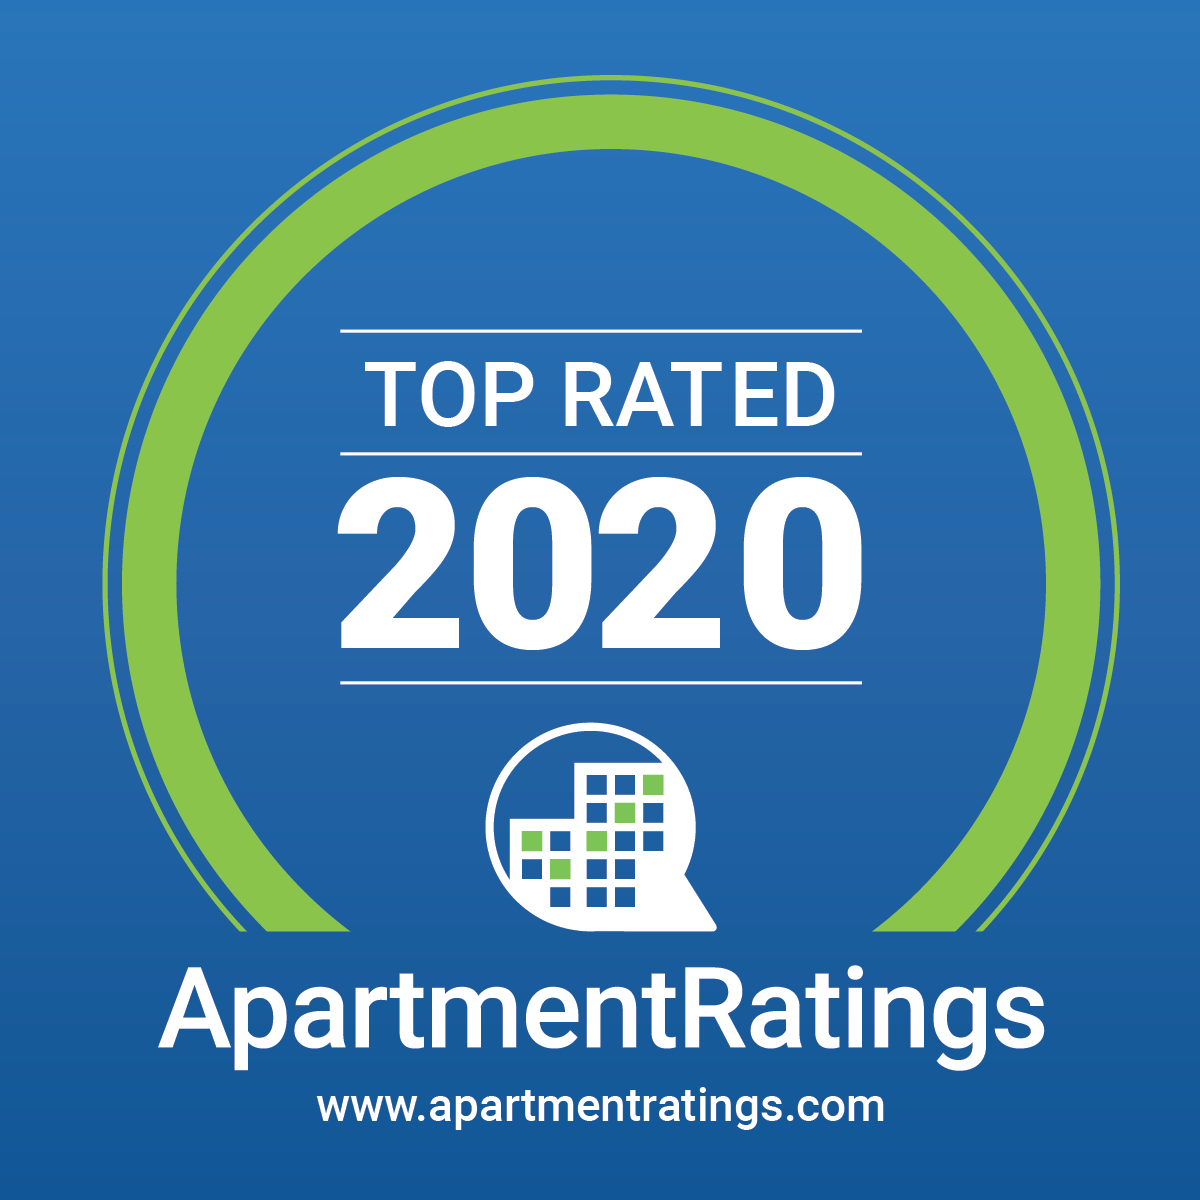 Top Rated 2020 ApartmentRatings